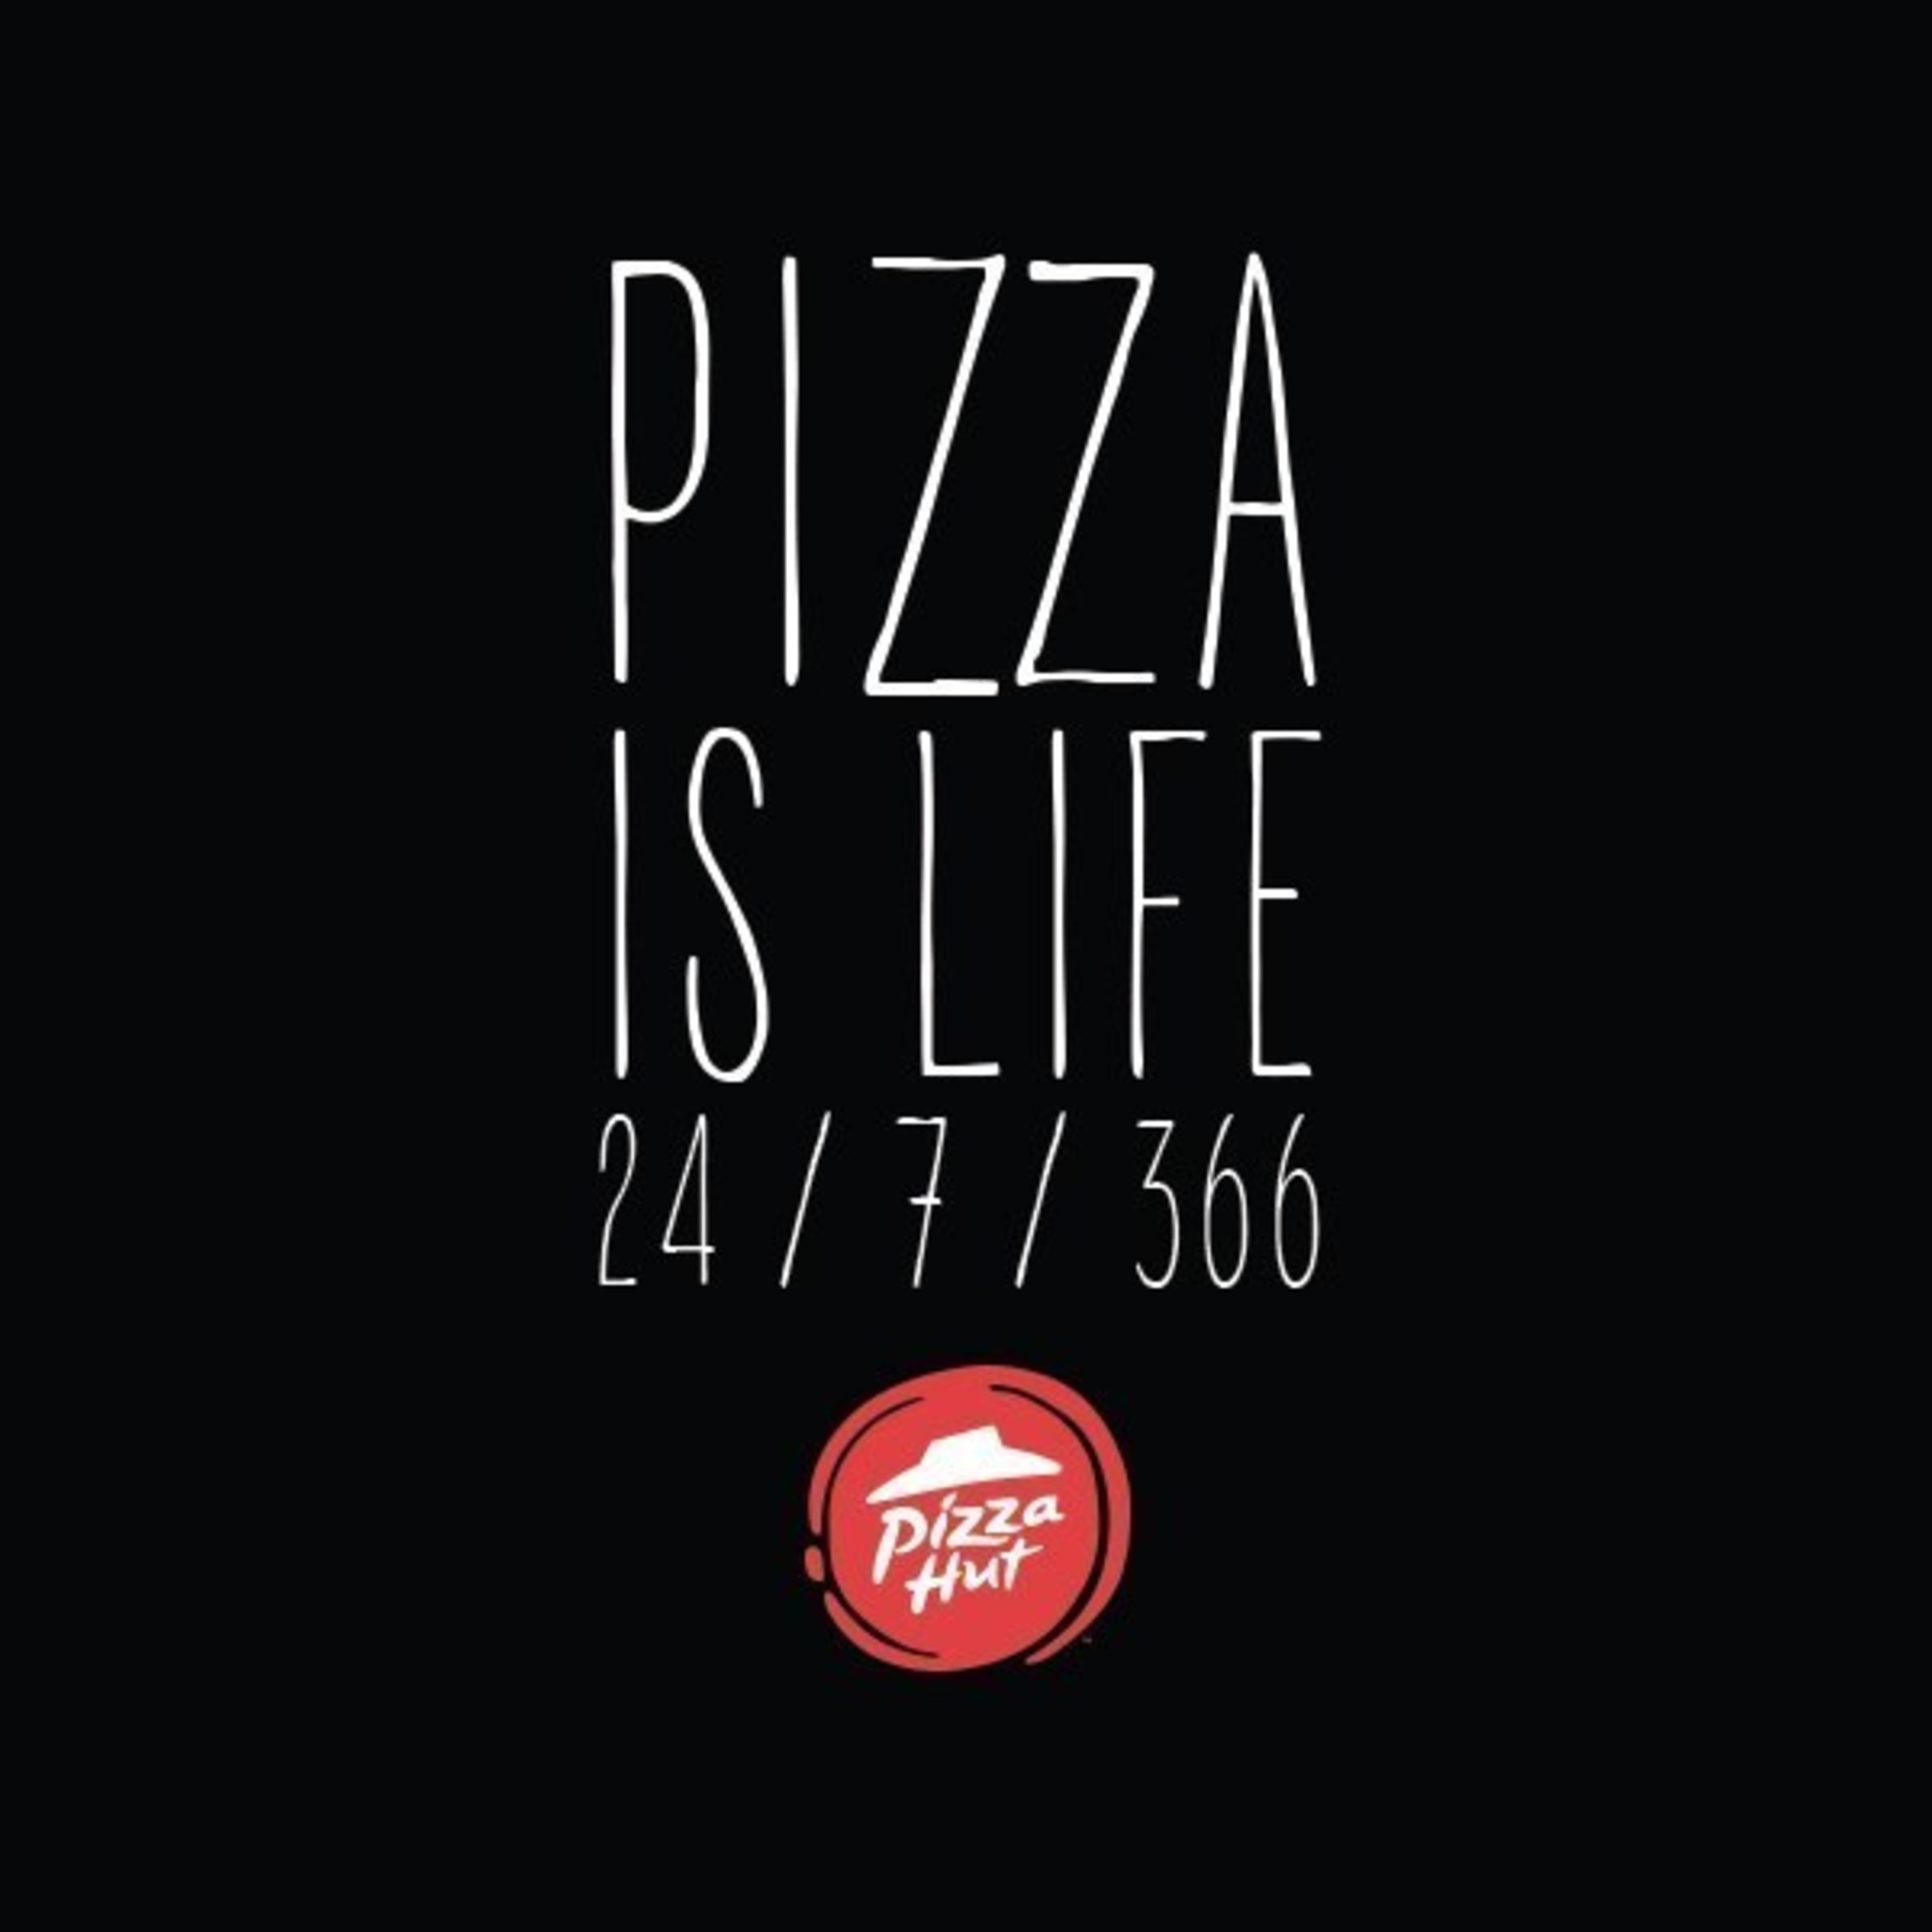 Pizza Hut Open Christmas Day.Look Before You Leap Lings Pizza Hut Makes Birthday Wishes Come